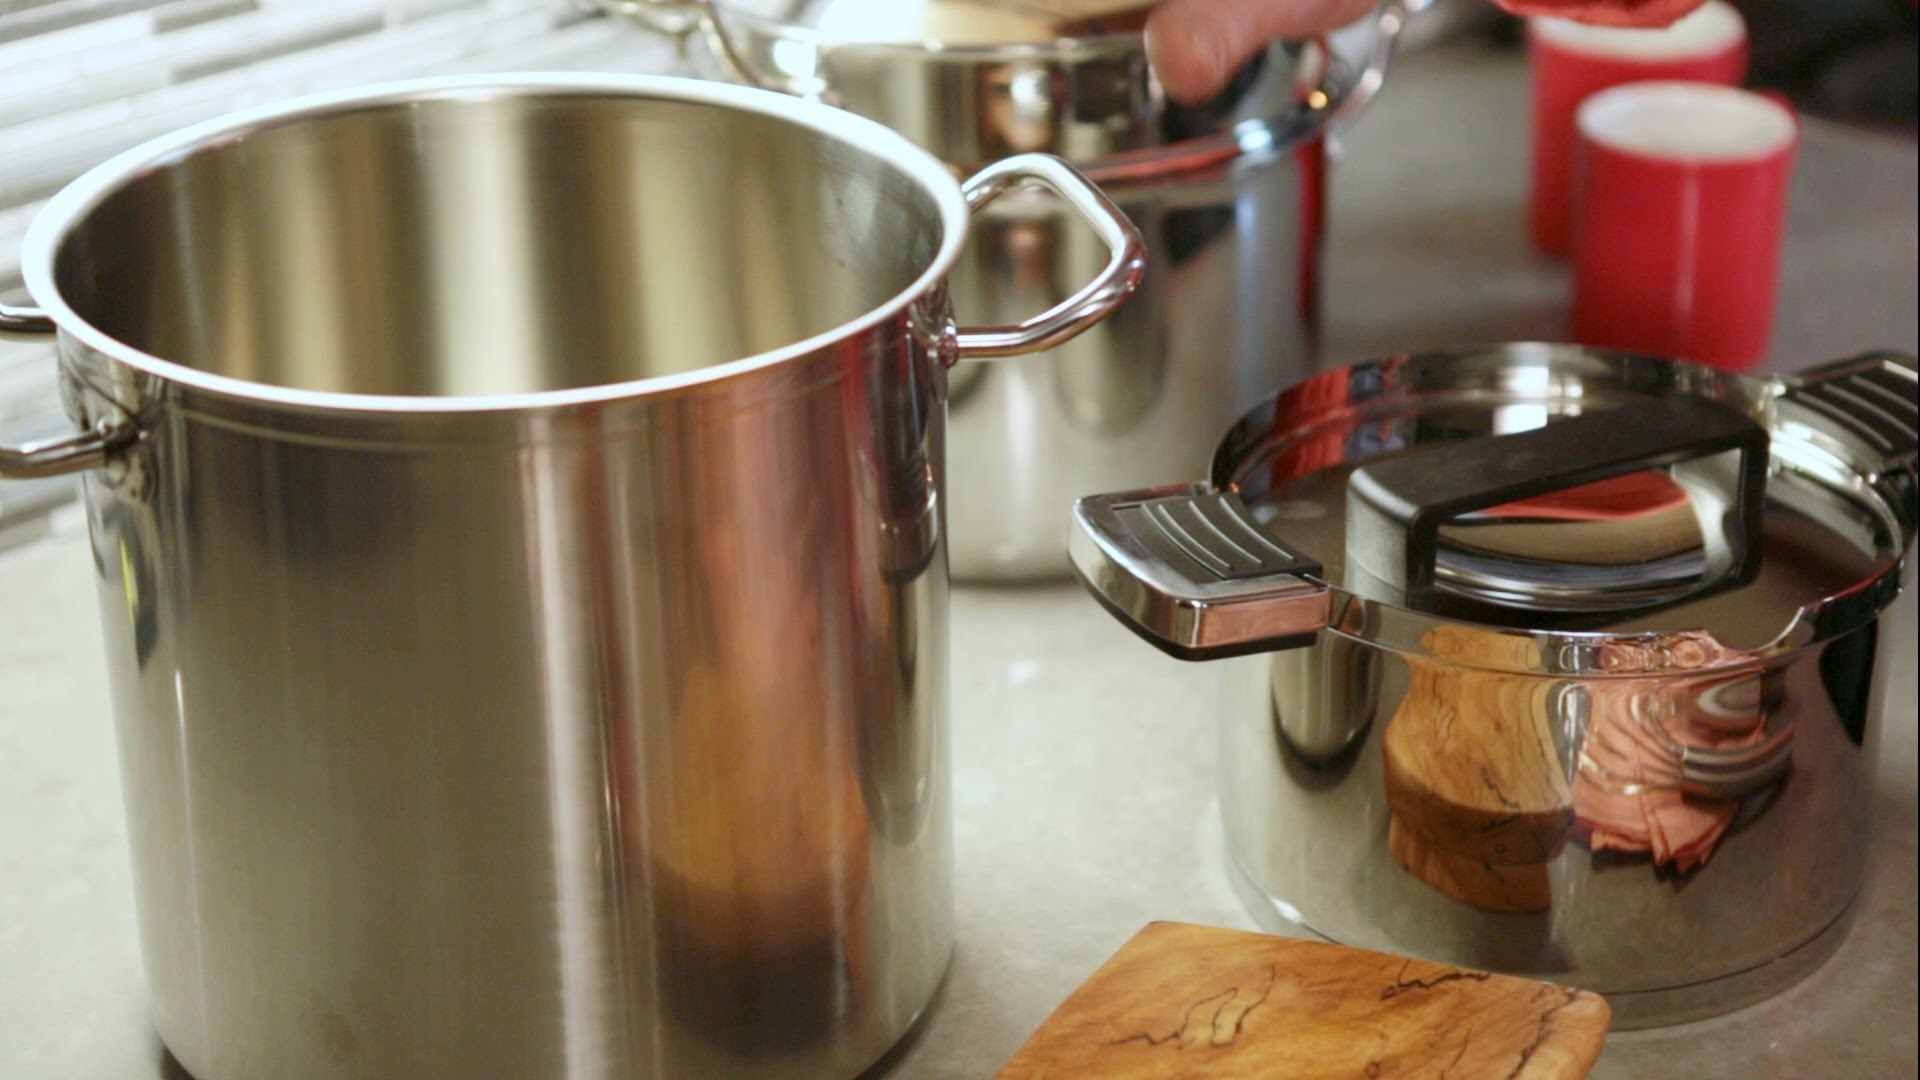 Gifts for Cooks Part 2: Everyday Chef